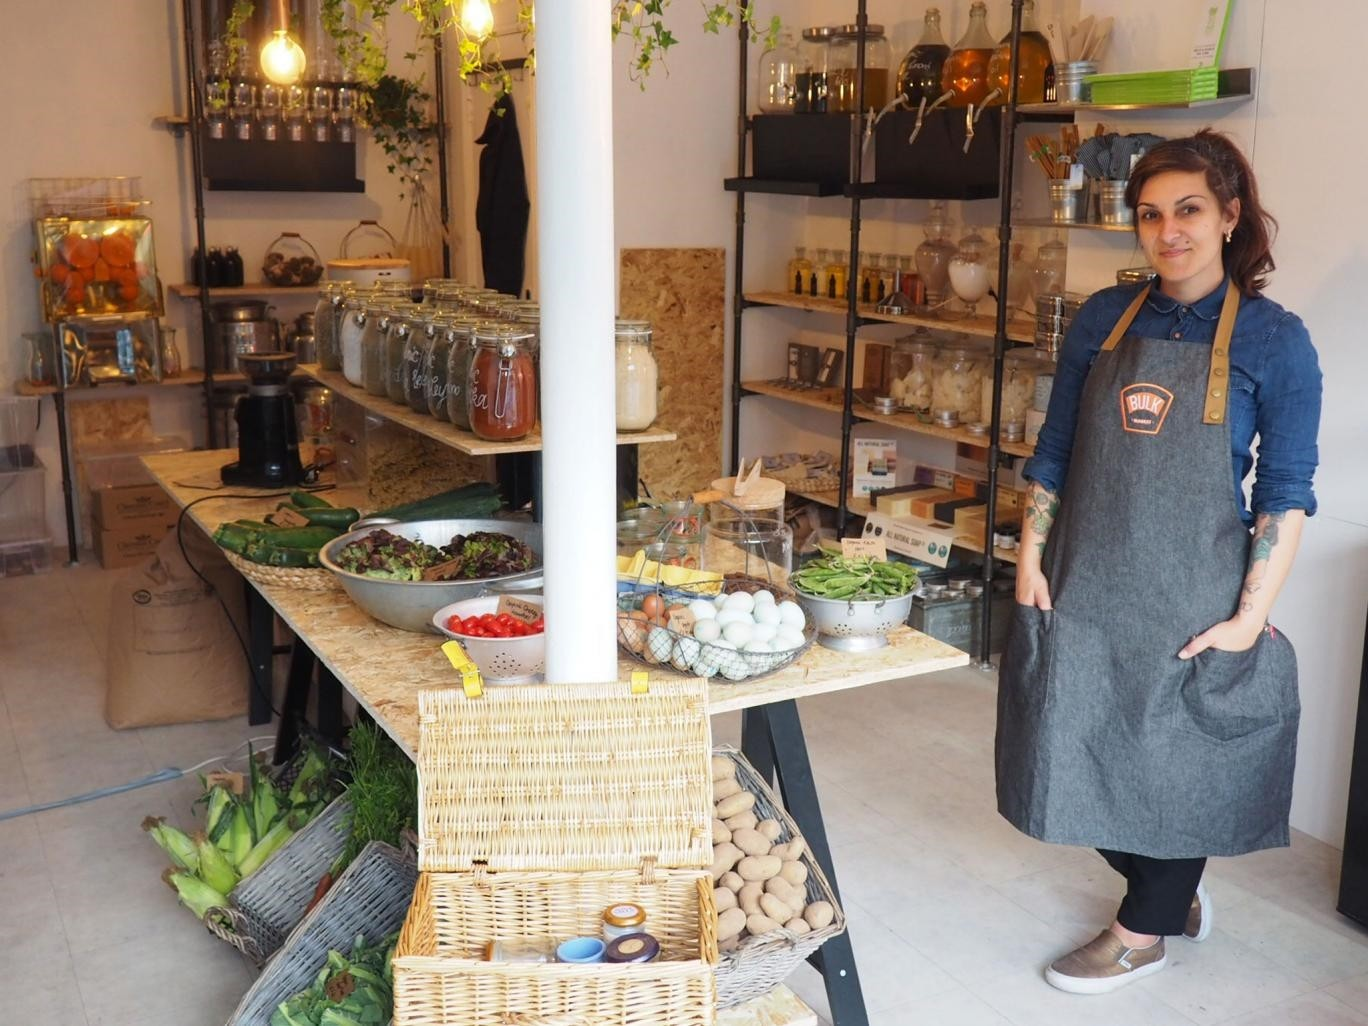 Ingrid Caldironi has opened the only u201czero-wasteu201d store in London, selling foods in bulk, products made out of waste and durable alternatives to typical disposable products, such as plastic cutlery, razors and sponges.